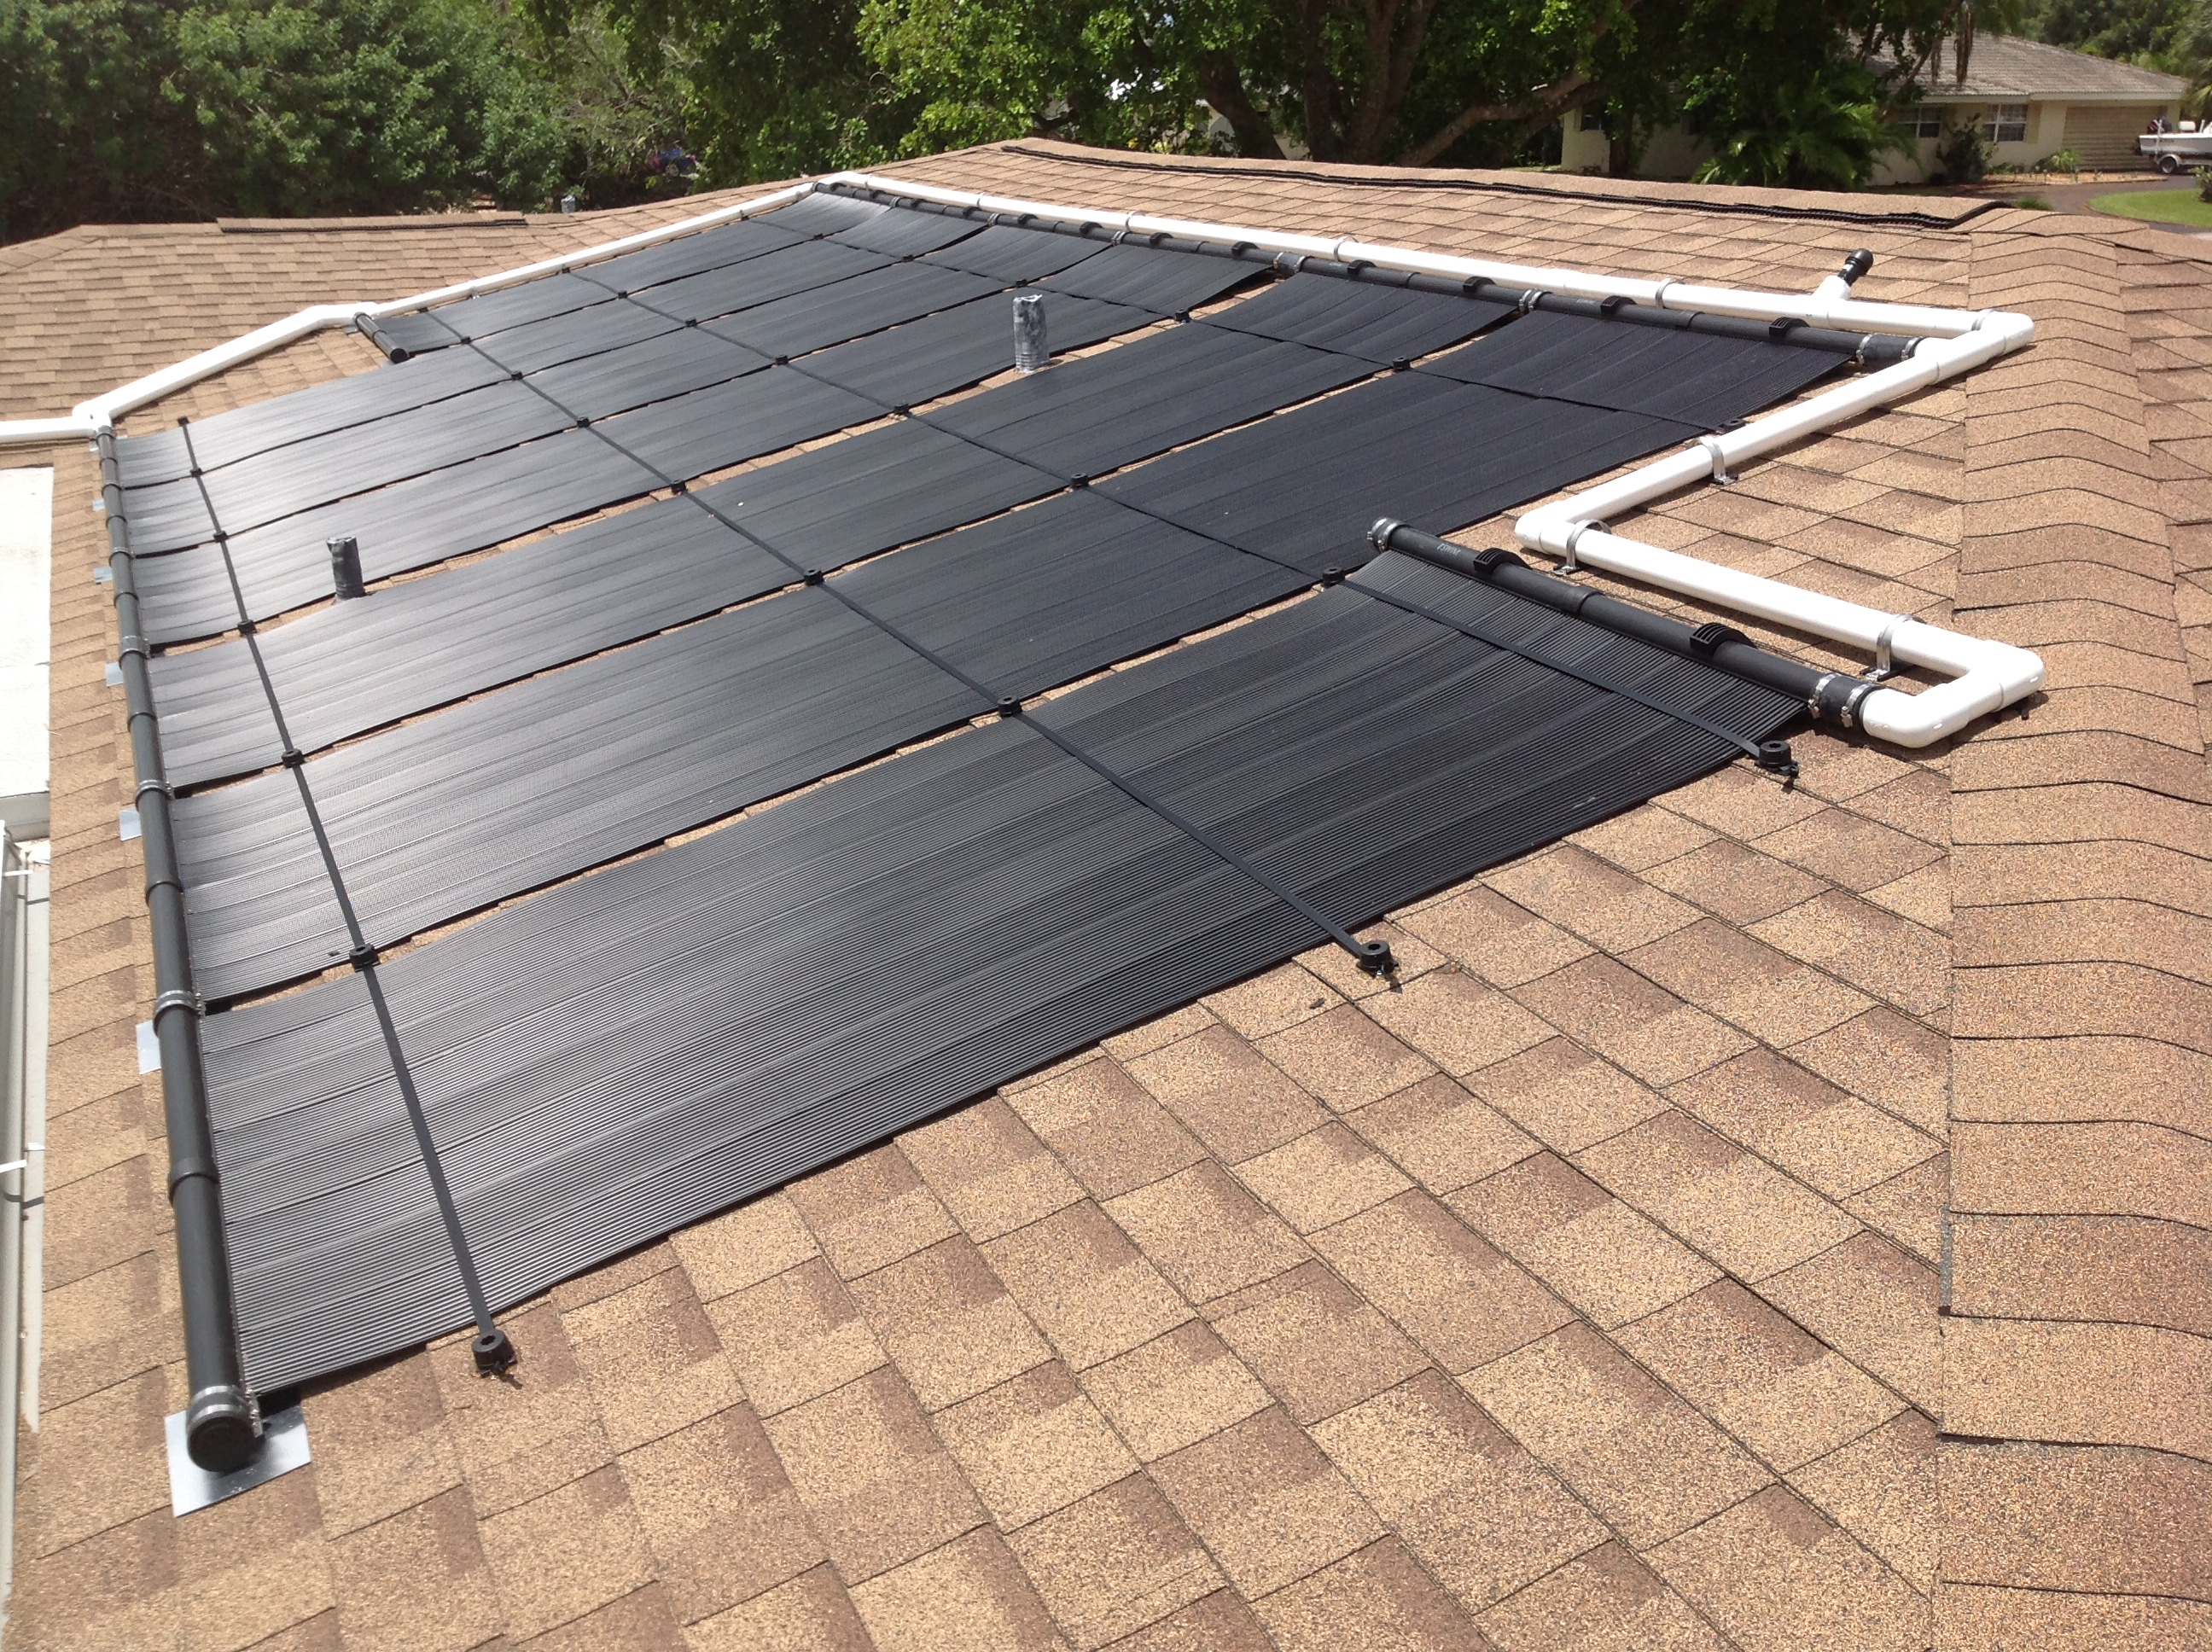 Florida solar design group solar pool heating for Solar heaters for swimming pools